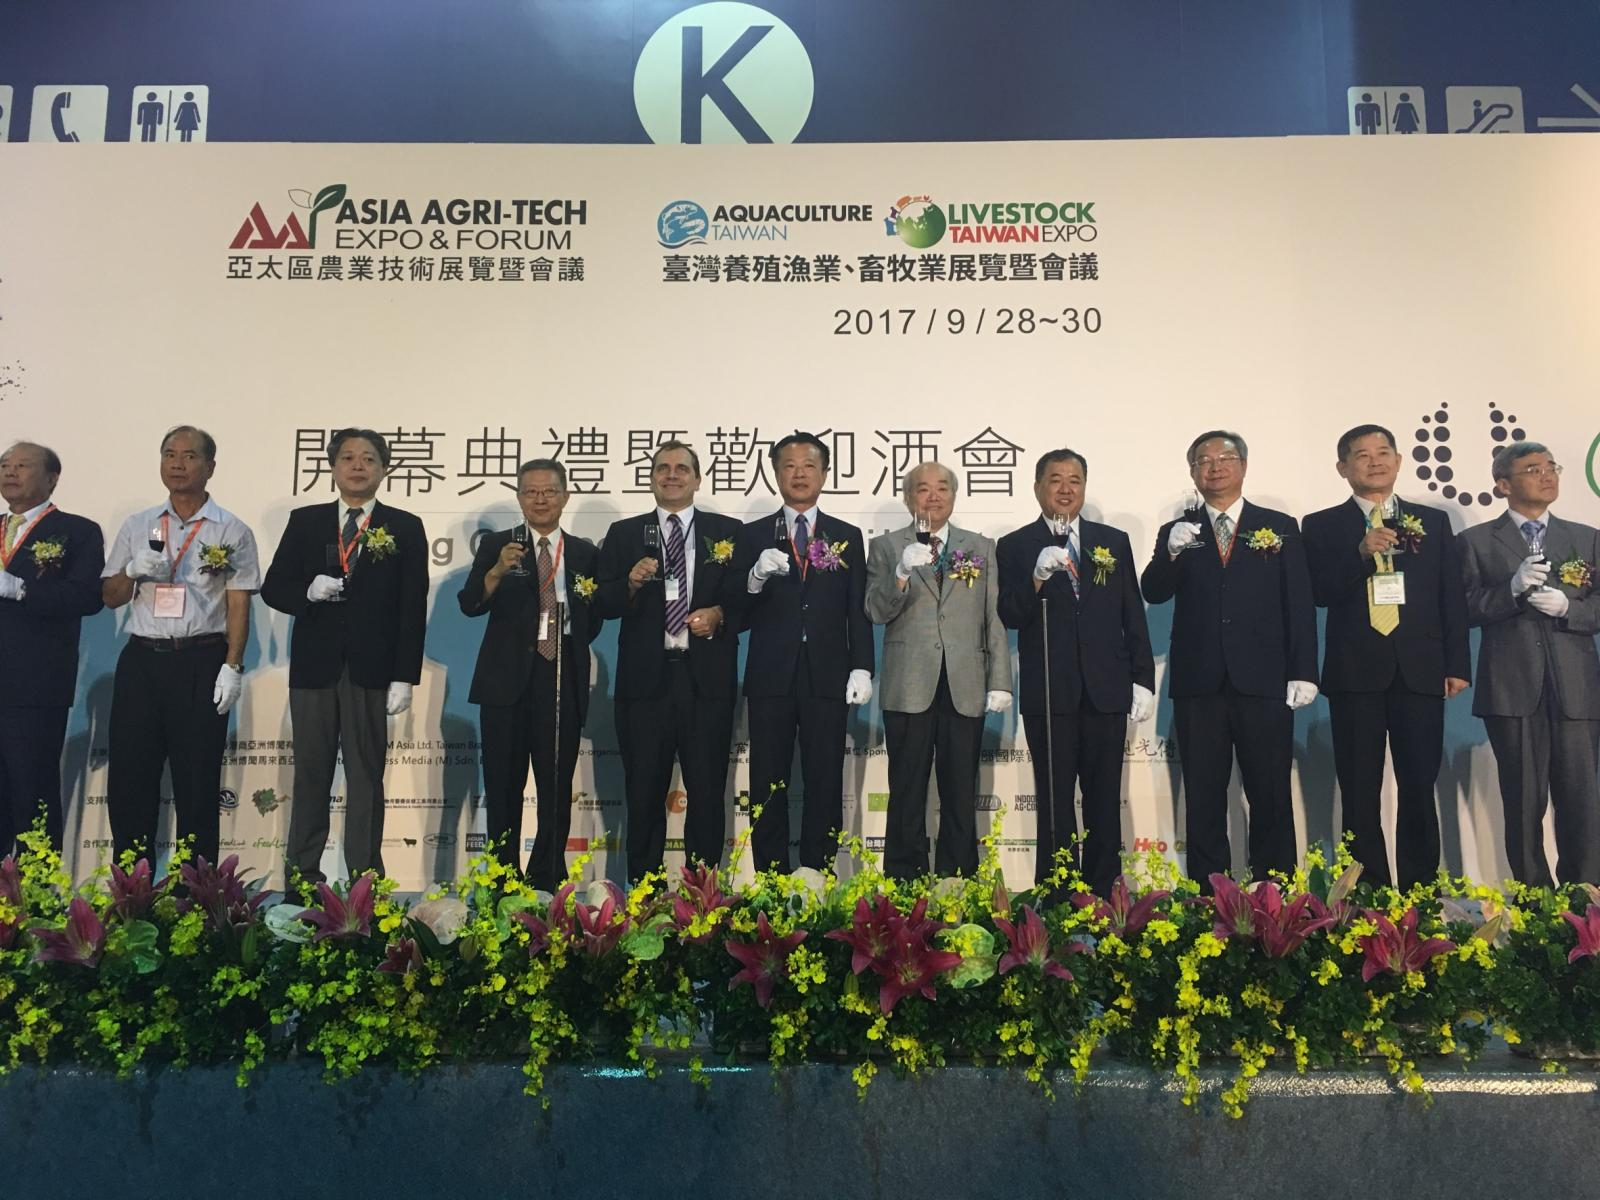 2017 Asia Agri-tech Expo & Forum opening ceremony